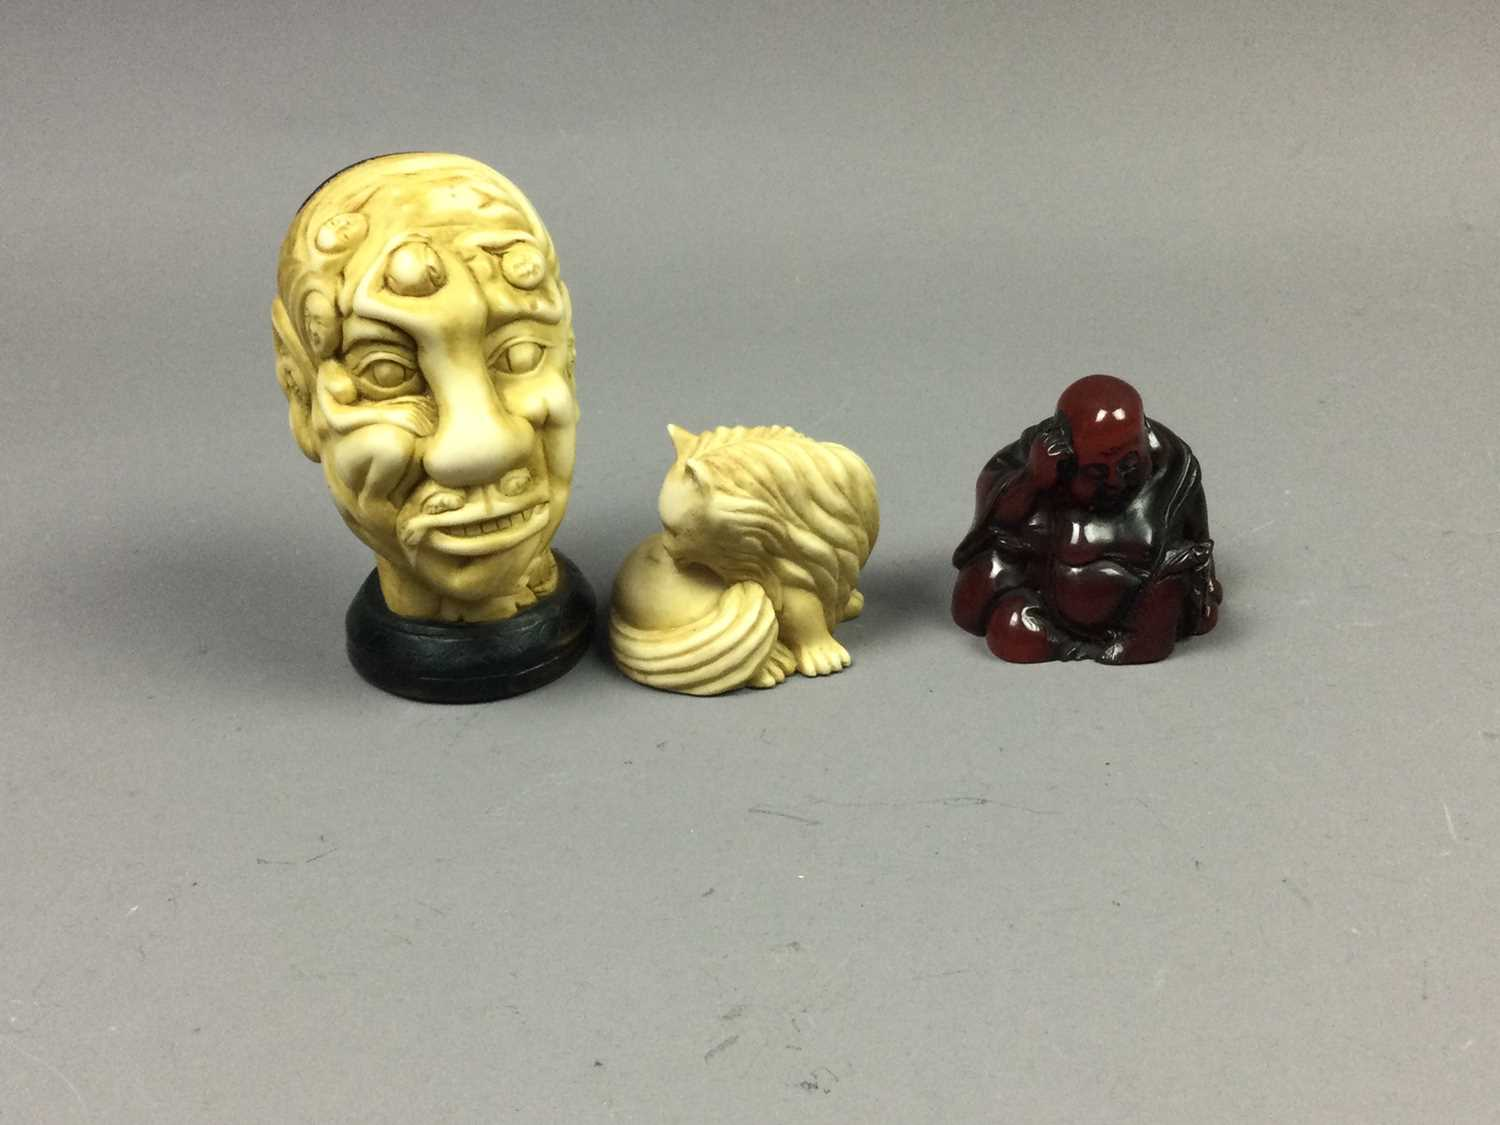 Lot 32 - A CHINESE NOVELTY RESIN HEAD STUDY ALONG WITH TWO RESIN NETSUKE